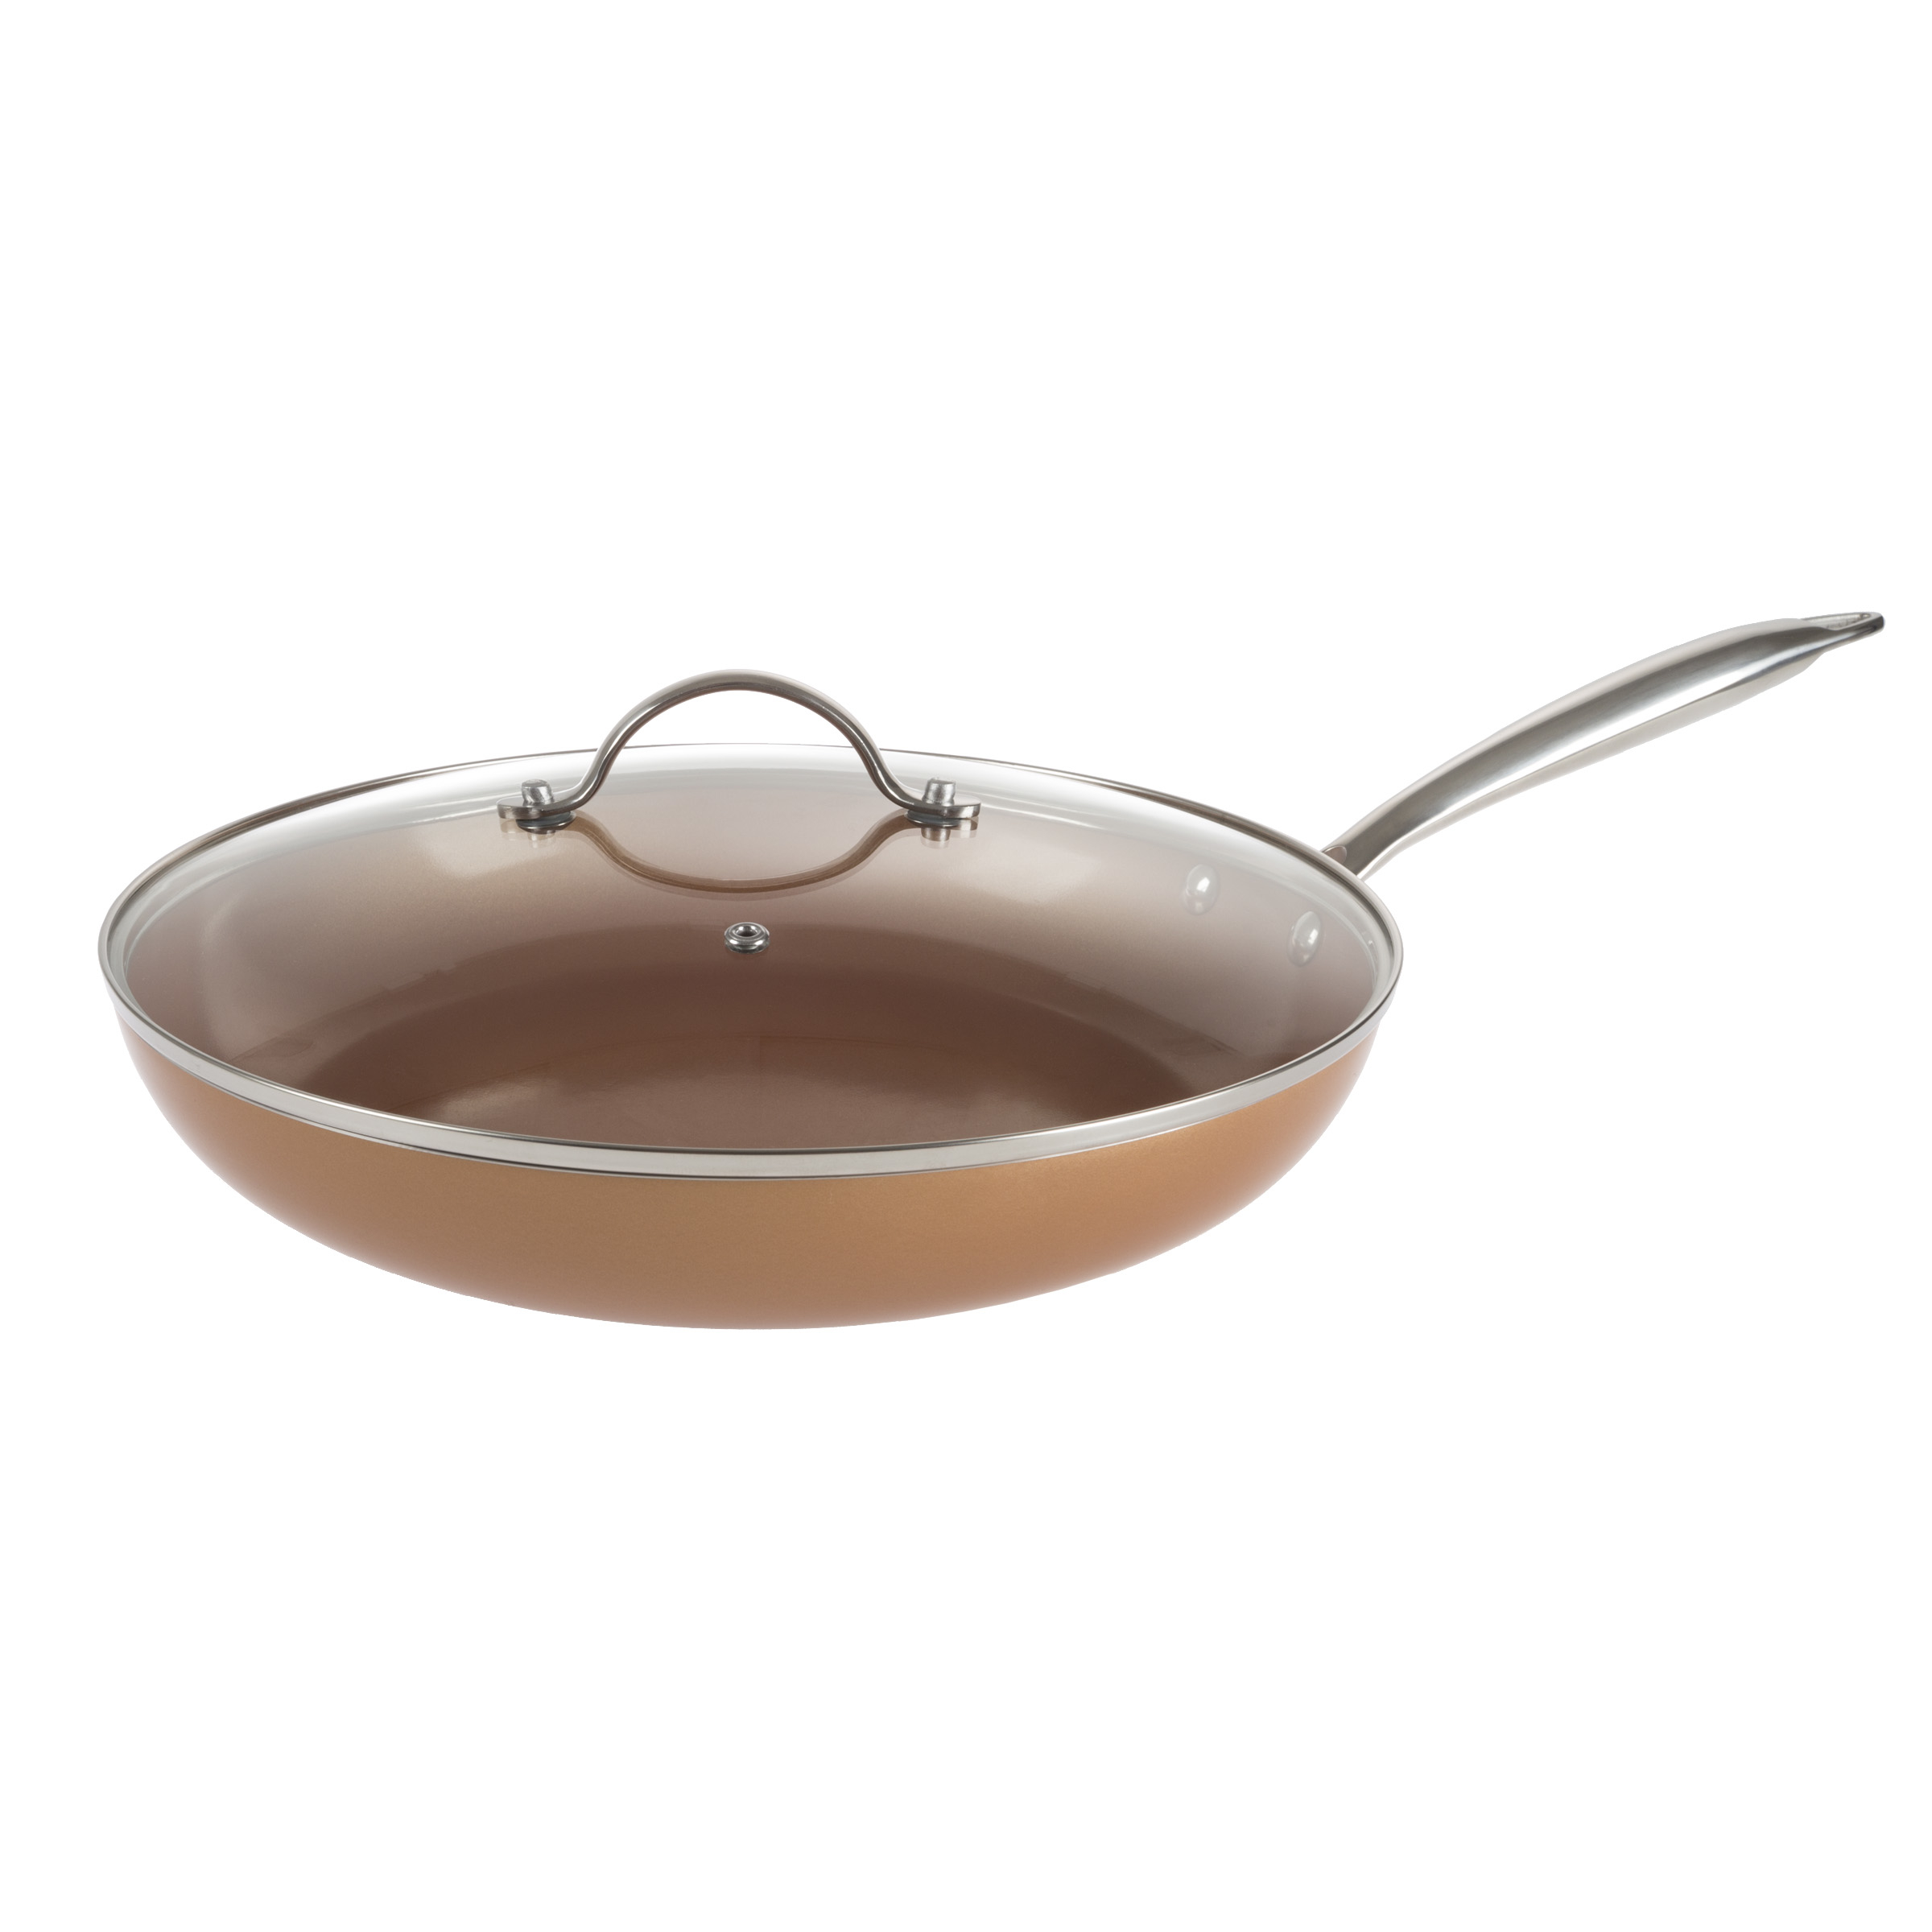 12 Inch Frying Pan with Lid Copper Finish Induction Cooking Oven Stove Top Safe by